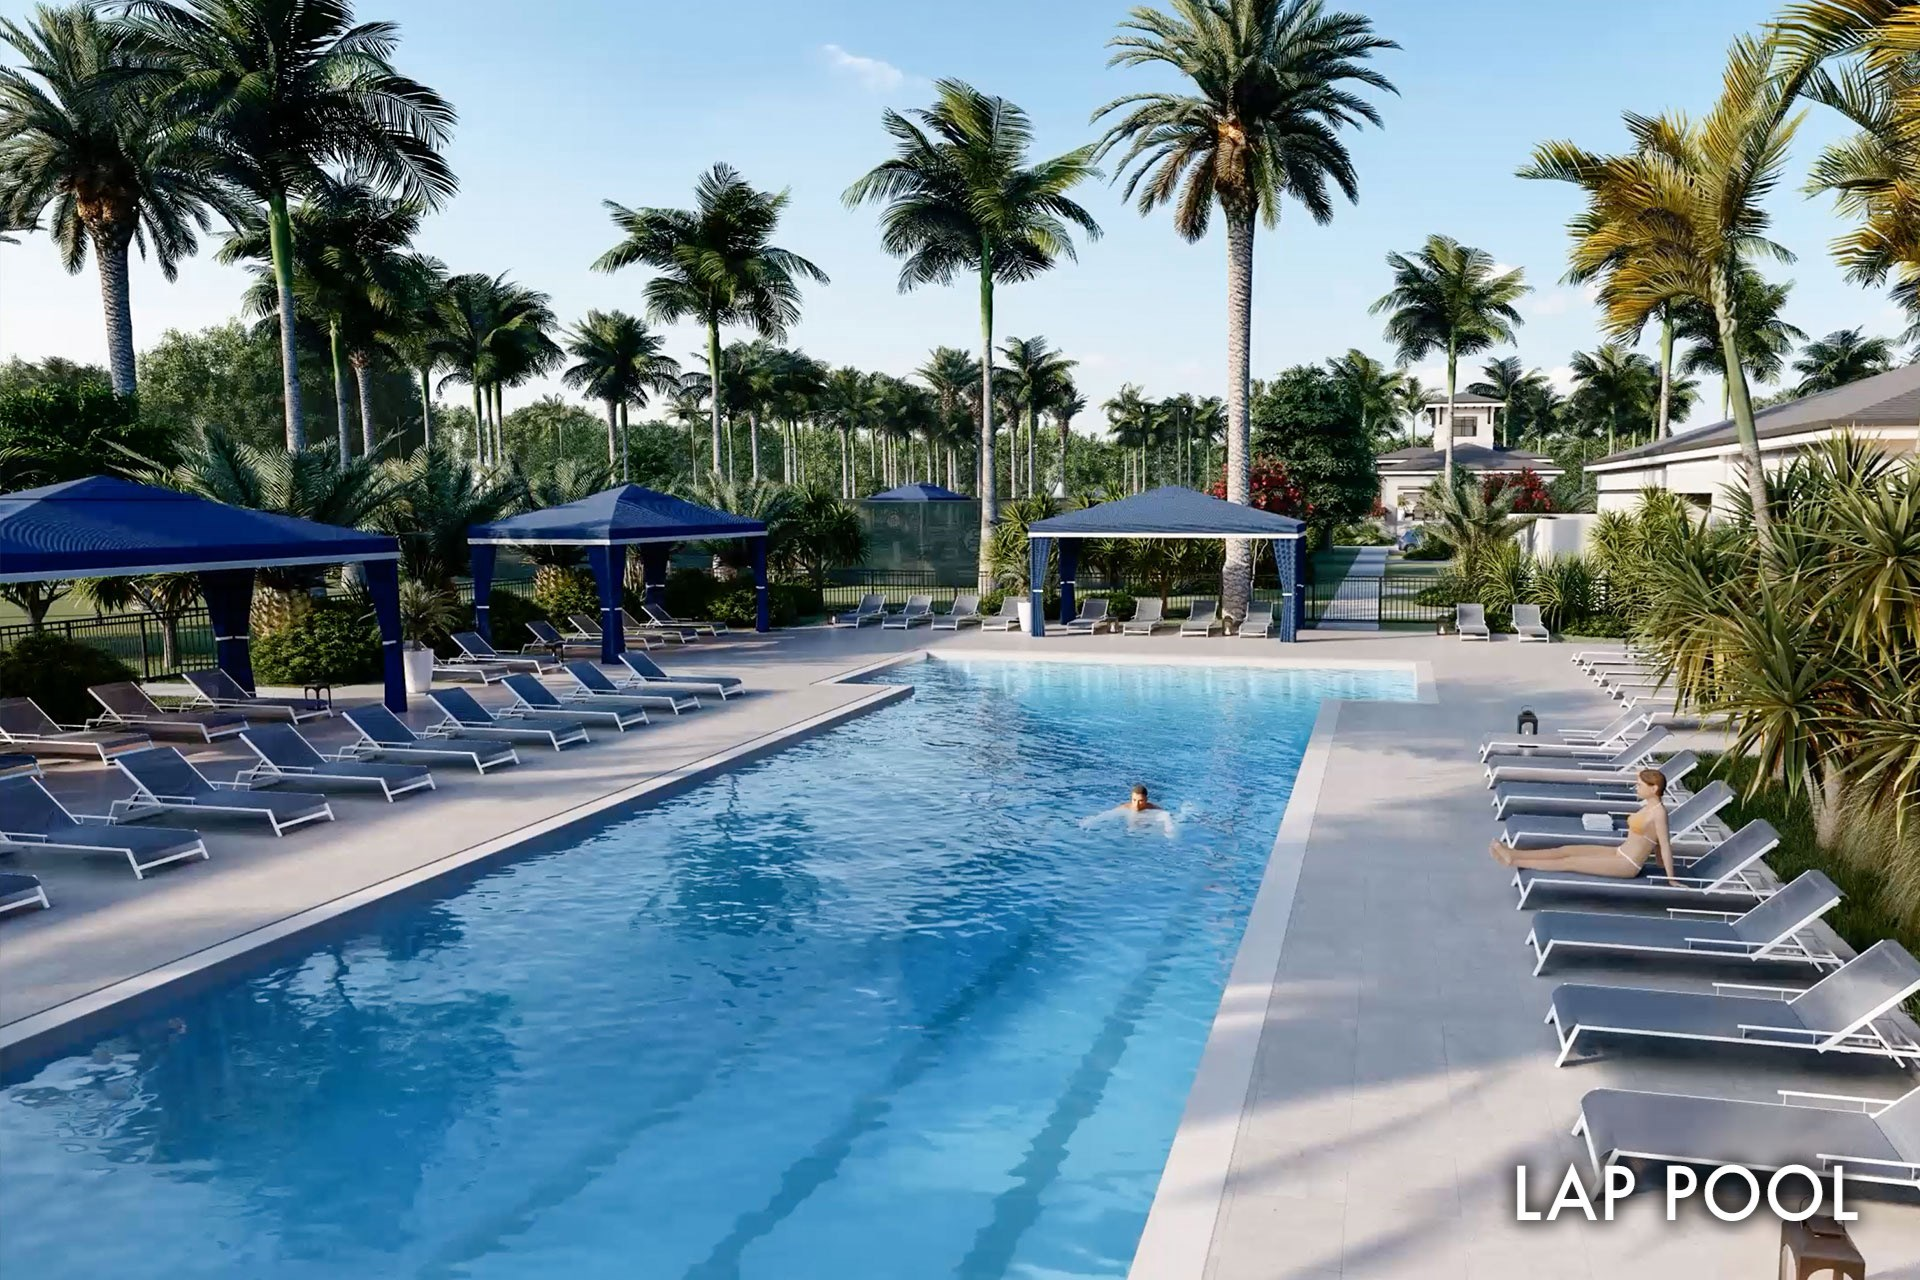 Boca Bridges BBR lap pool 3x2